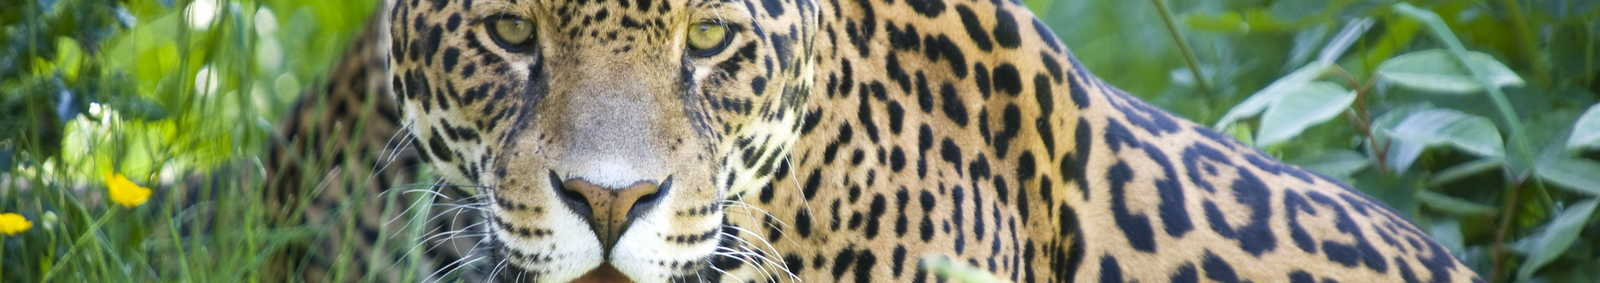 Close up of a Jaguar (Panthera onca) in forest